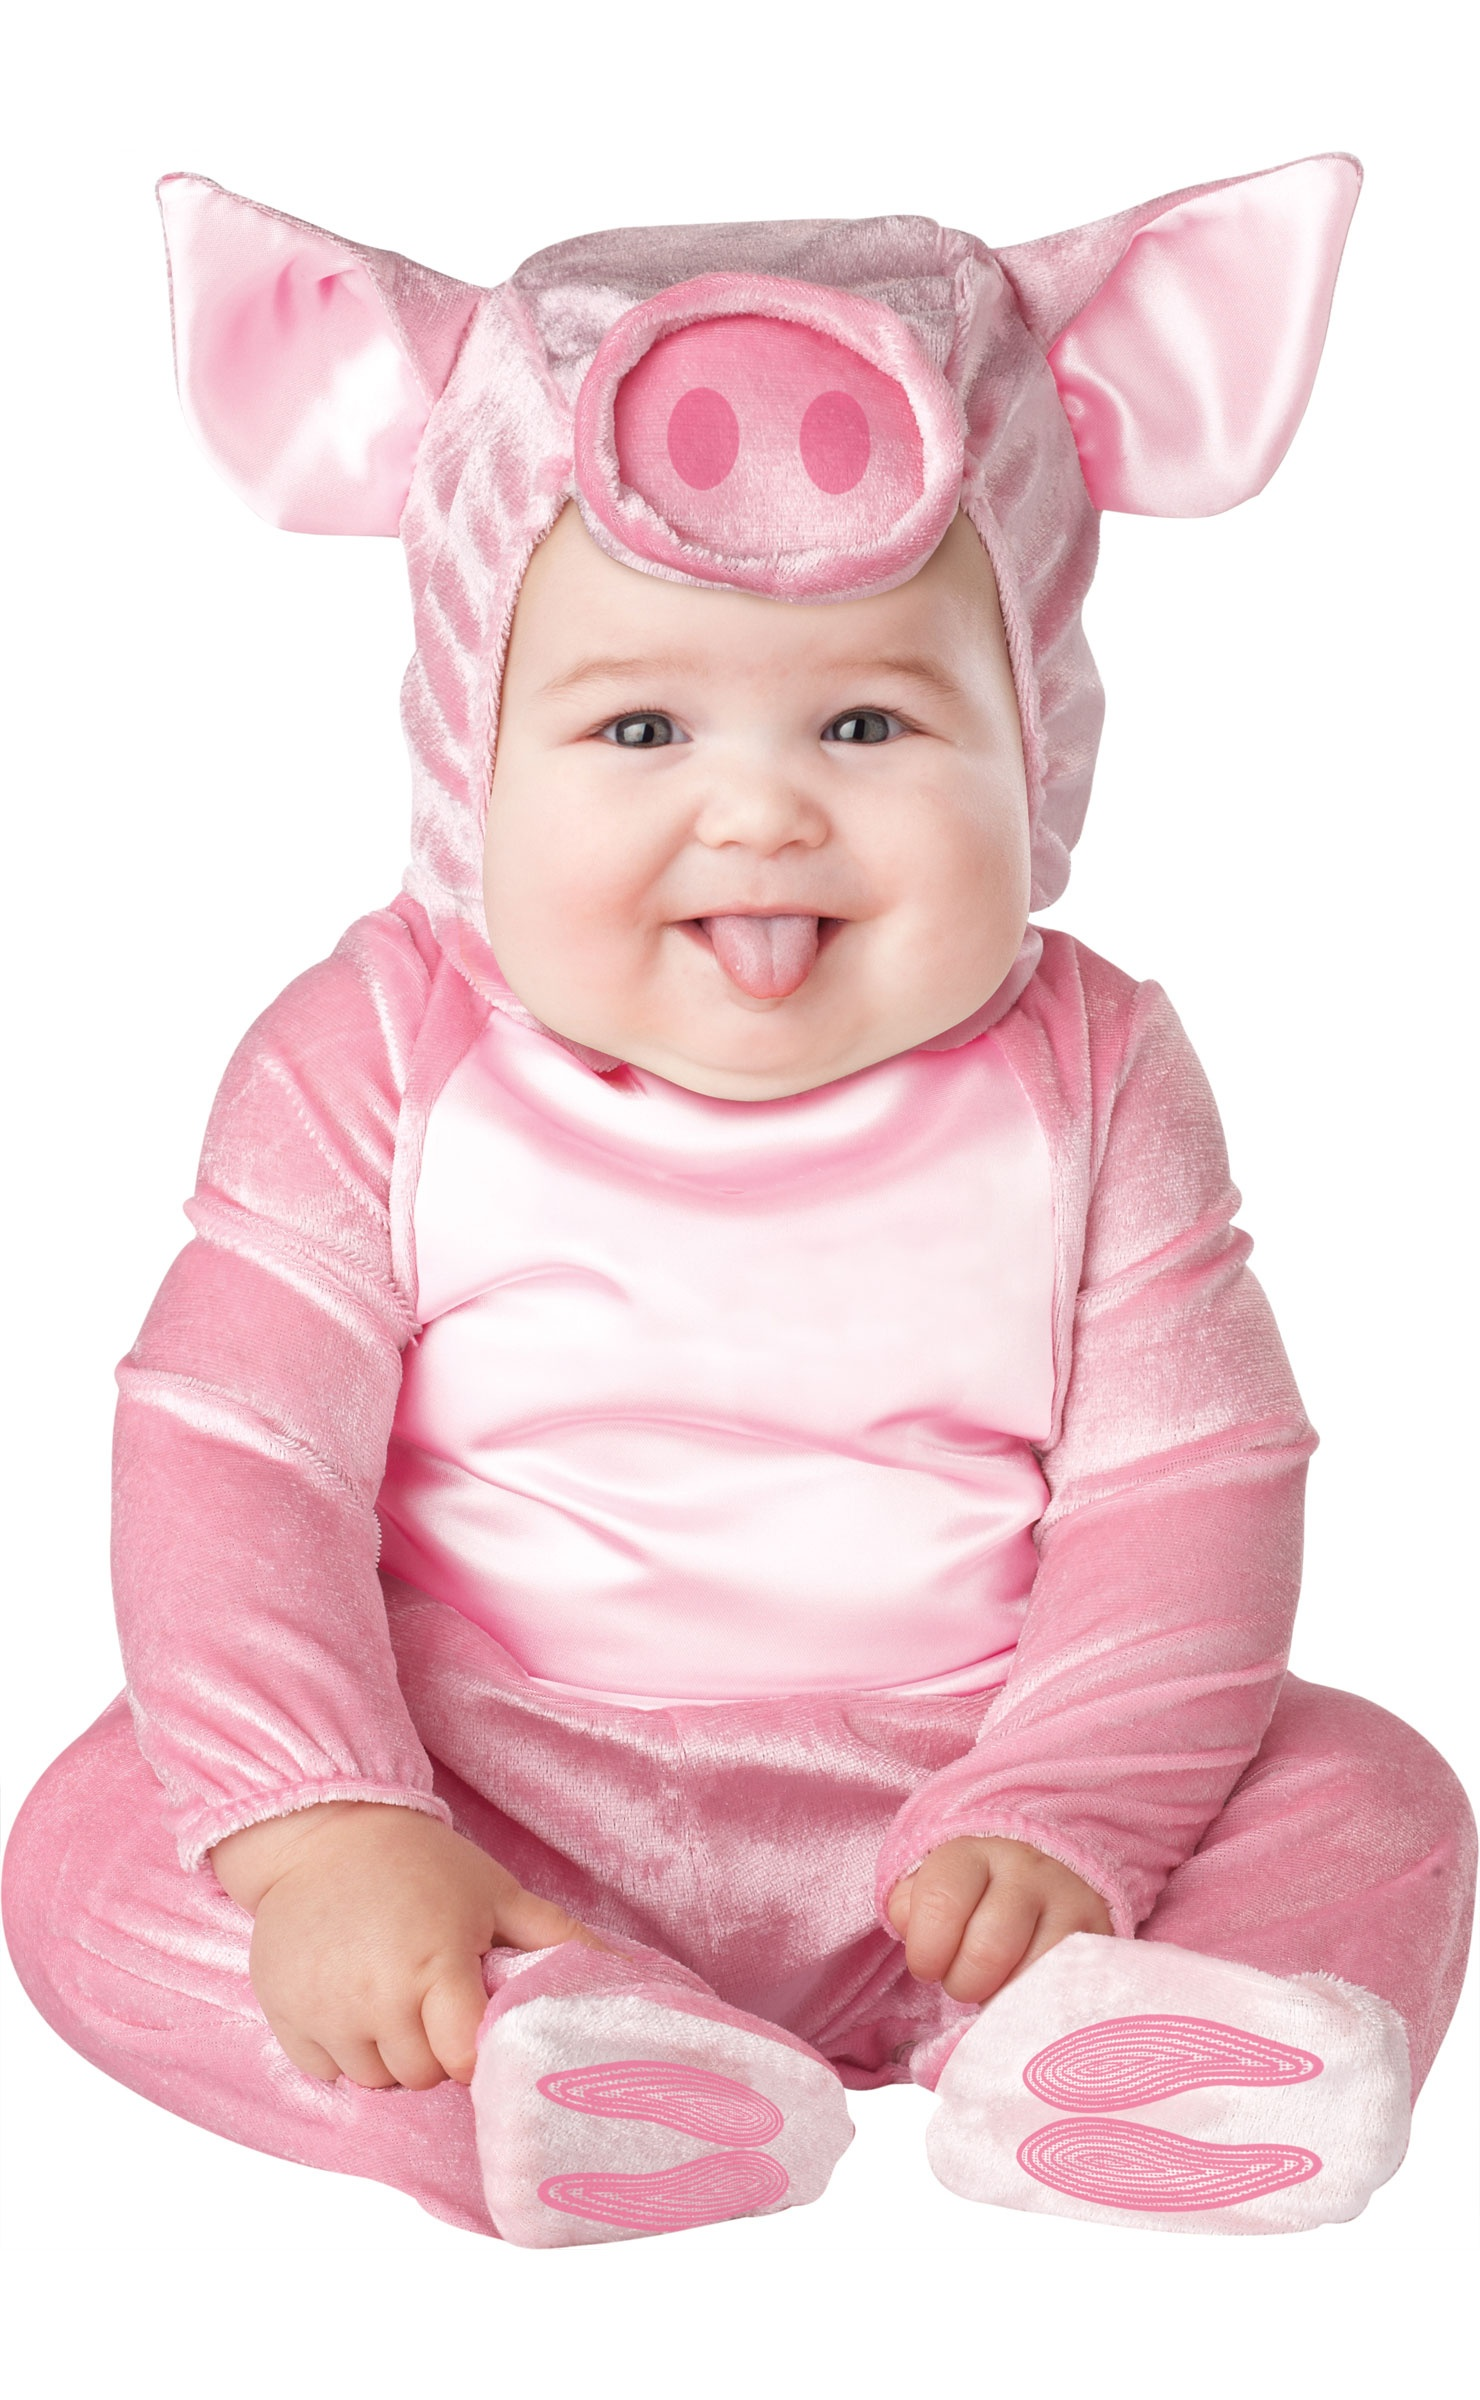 Baby Girl Owl Costumes http://www.mrcostumes.com/Girls-Pink-Little-Piggy-Baby-Costume-8500.htm